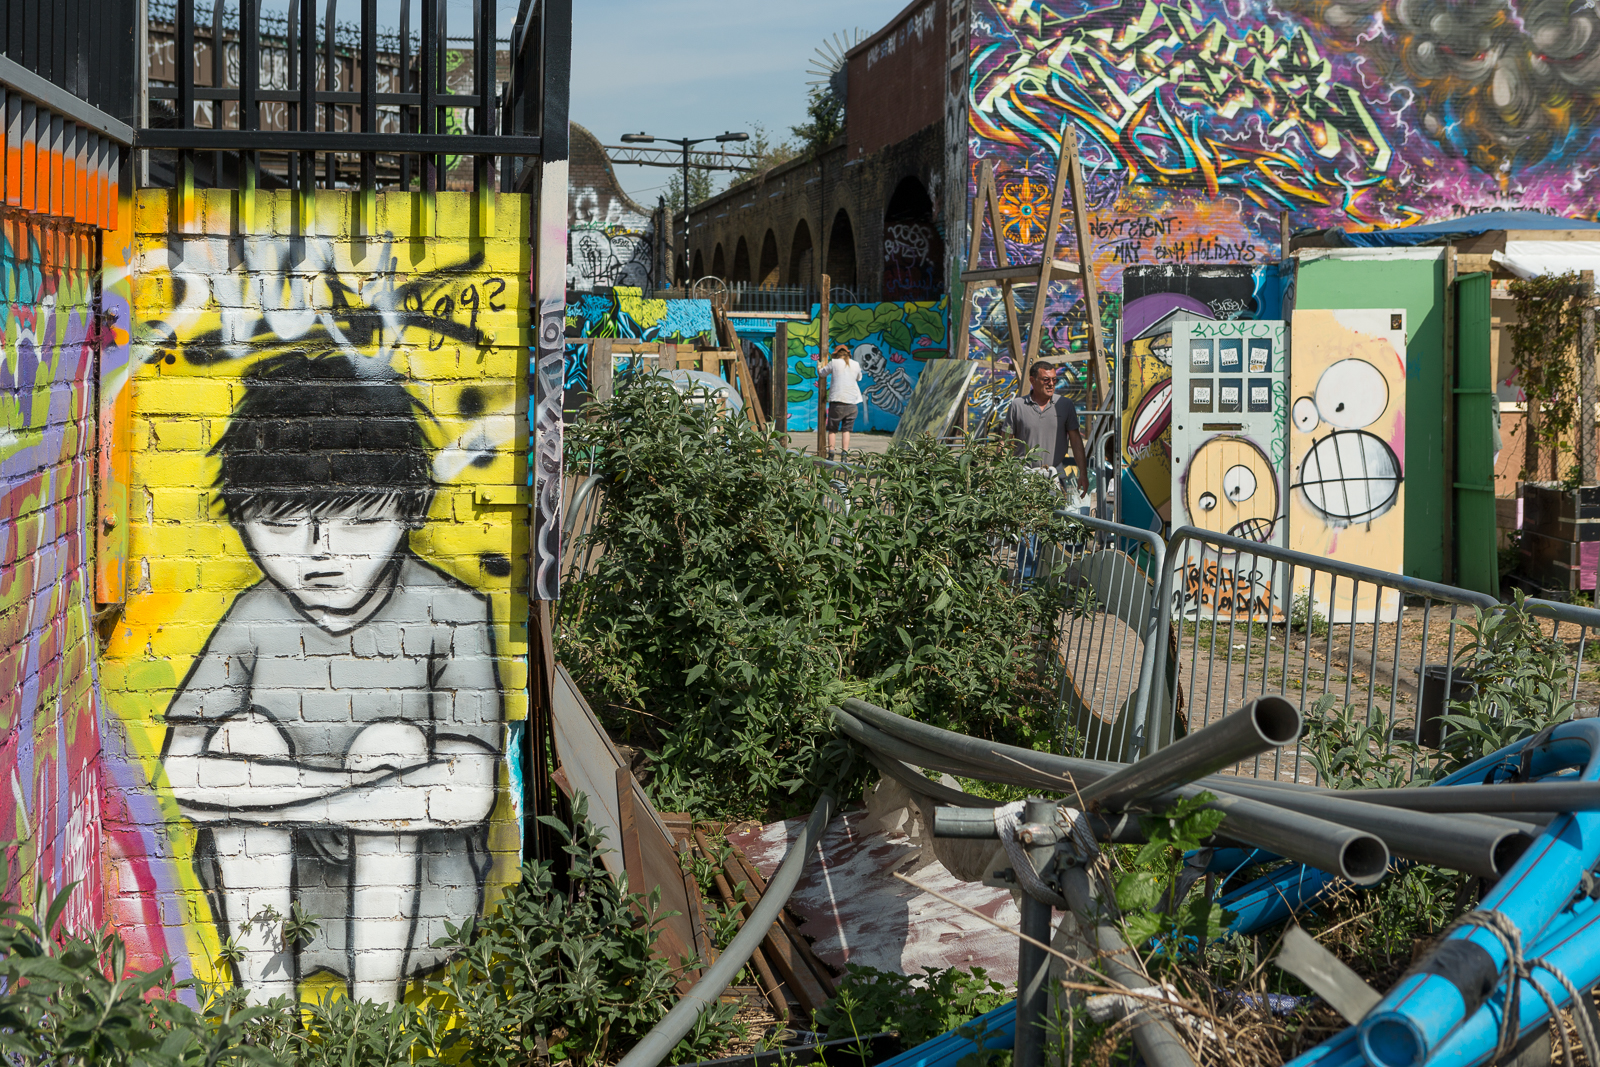 Nomadic Community Gardens near Brick Lane, East London